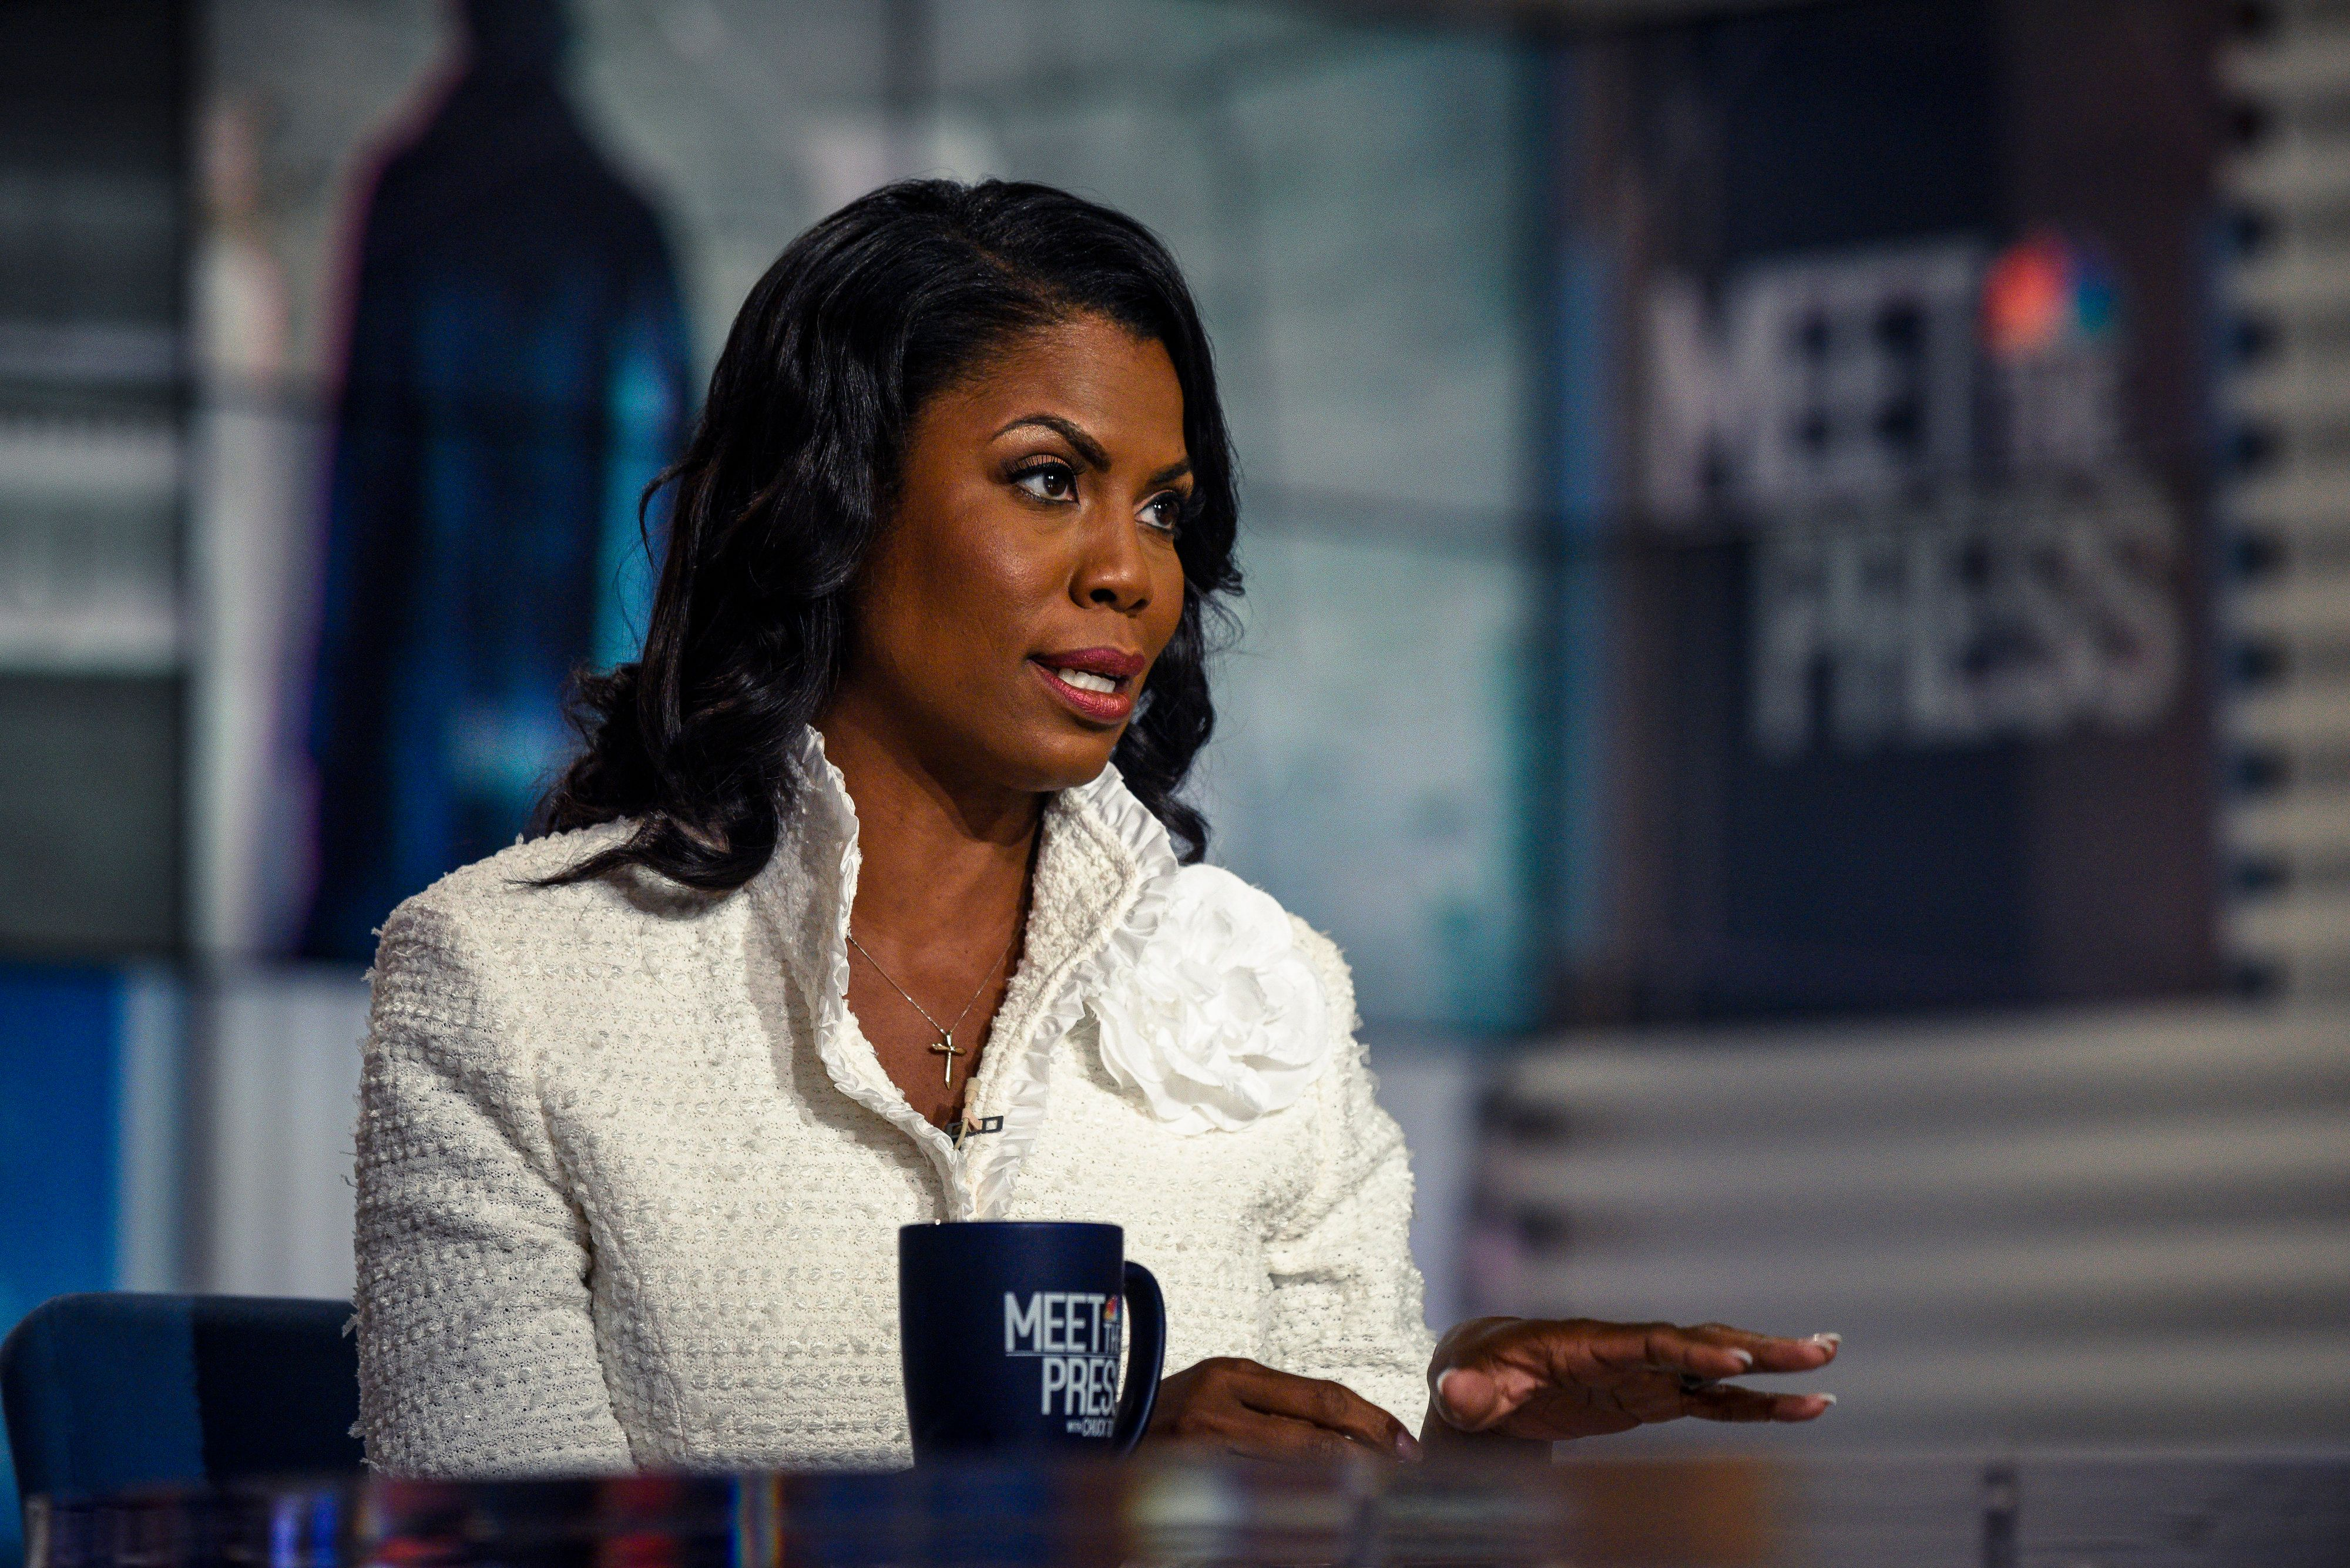 MEET THE PRESS -- Pictured: (l-r)  Omarosa Manigault Newman, Former Assistant to President Donald Trump and Director of Communications for the White House Office of Public Liaison; Author, Unhinged: An Insider's Account of the Trump White House appears in an exclusive interview on 'Meet the Press' in Washington, D.C., Sunday, August 12, 2018.  (Photo by: William B. Plowman/NBC/NBC NewsWire via Getty Images)